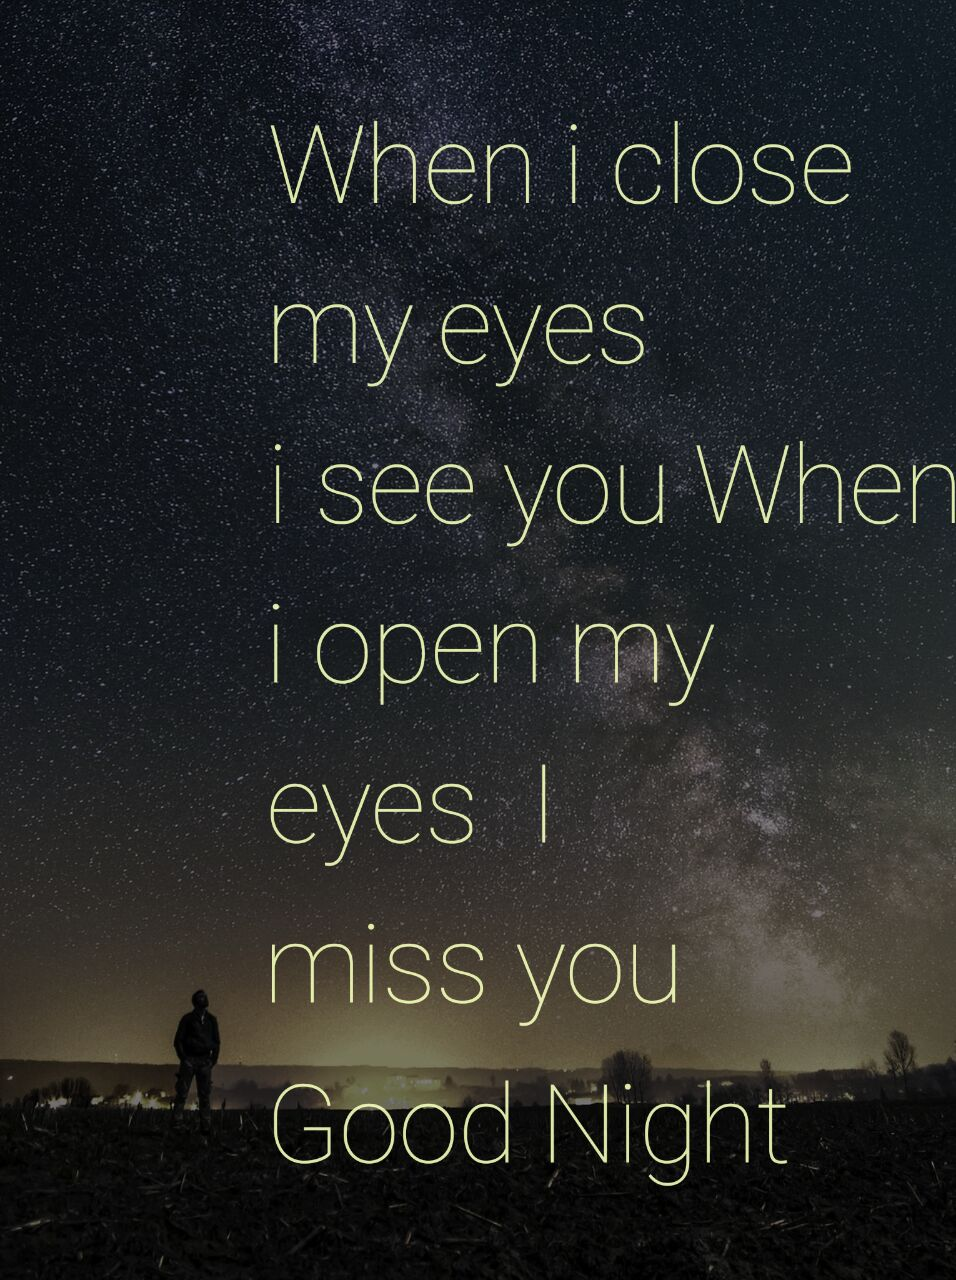 Good Night Images Sms And Quotes Good Night Message For Her 2018